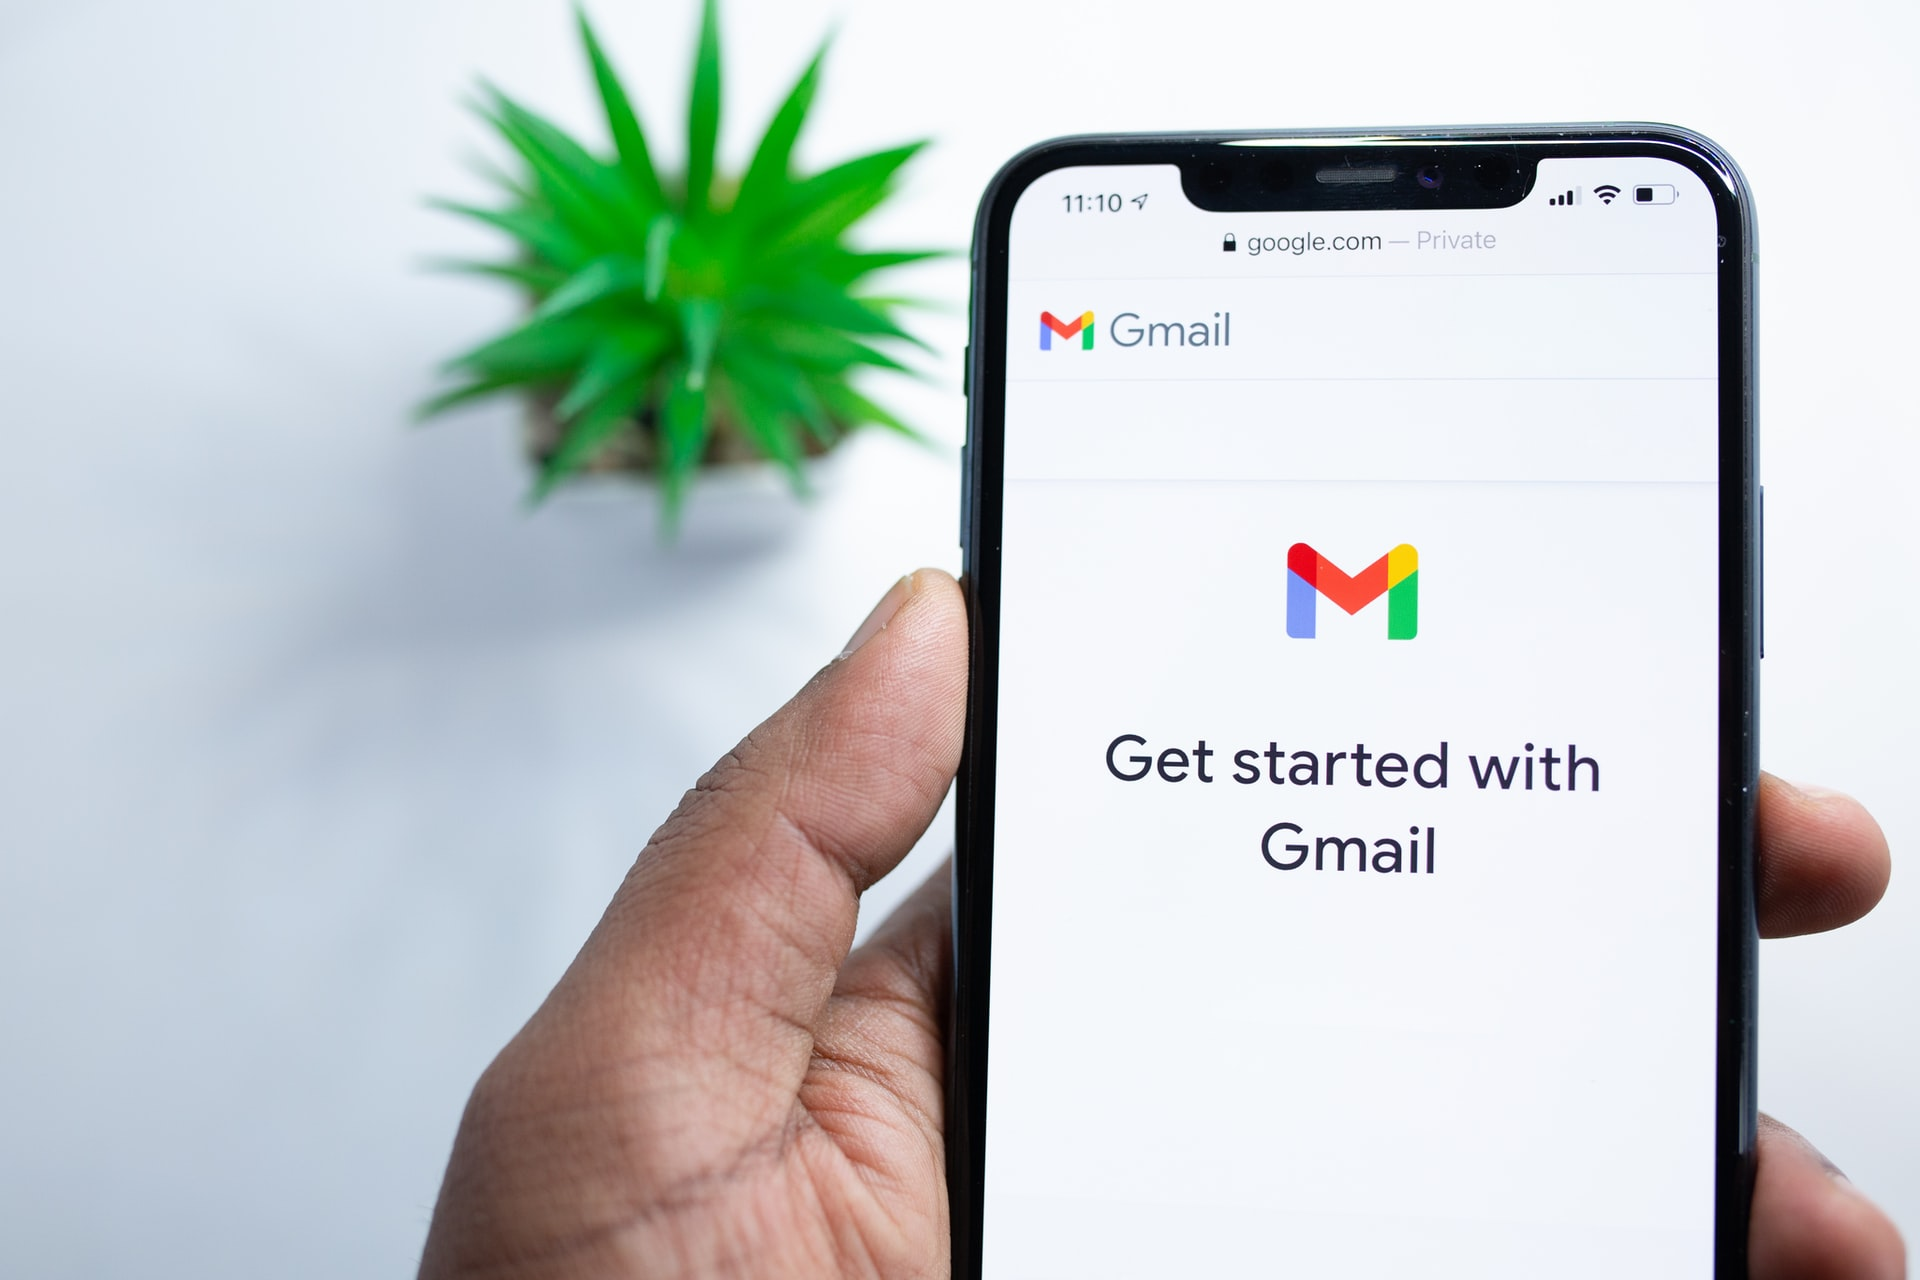 Did you know you can remotely sign out of Gmail?